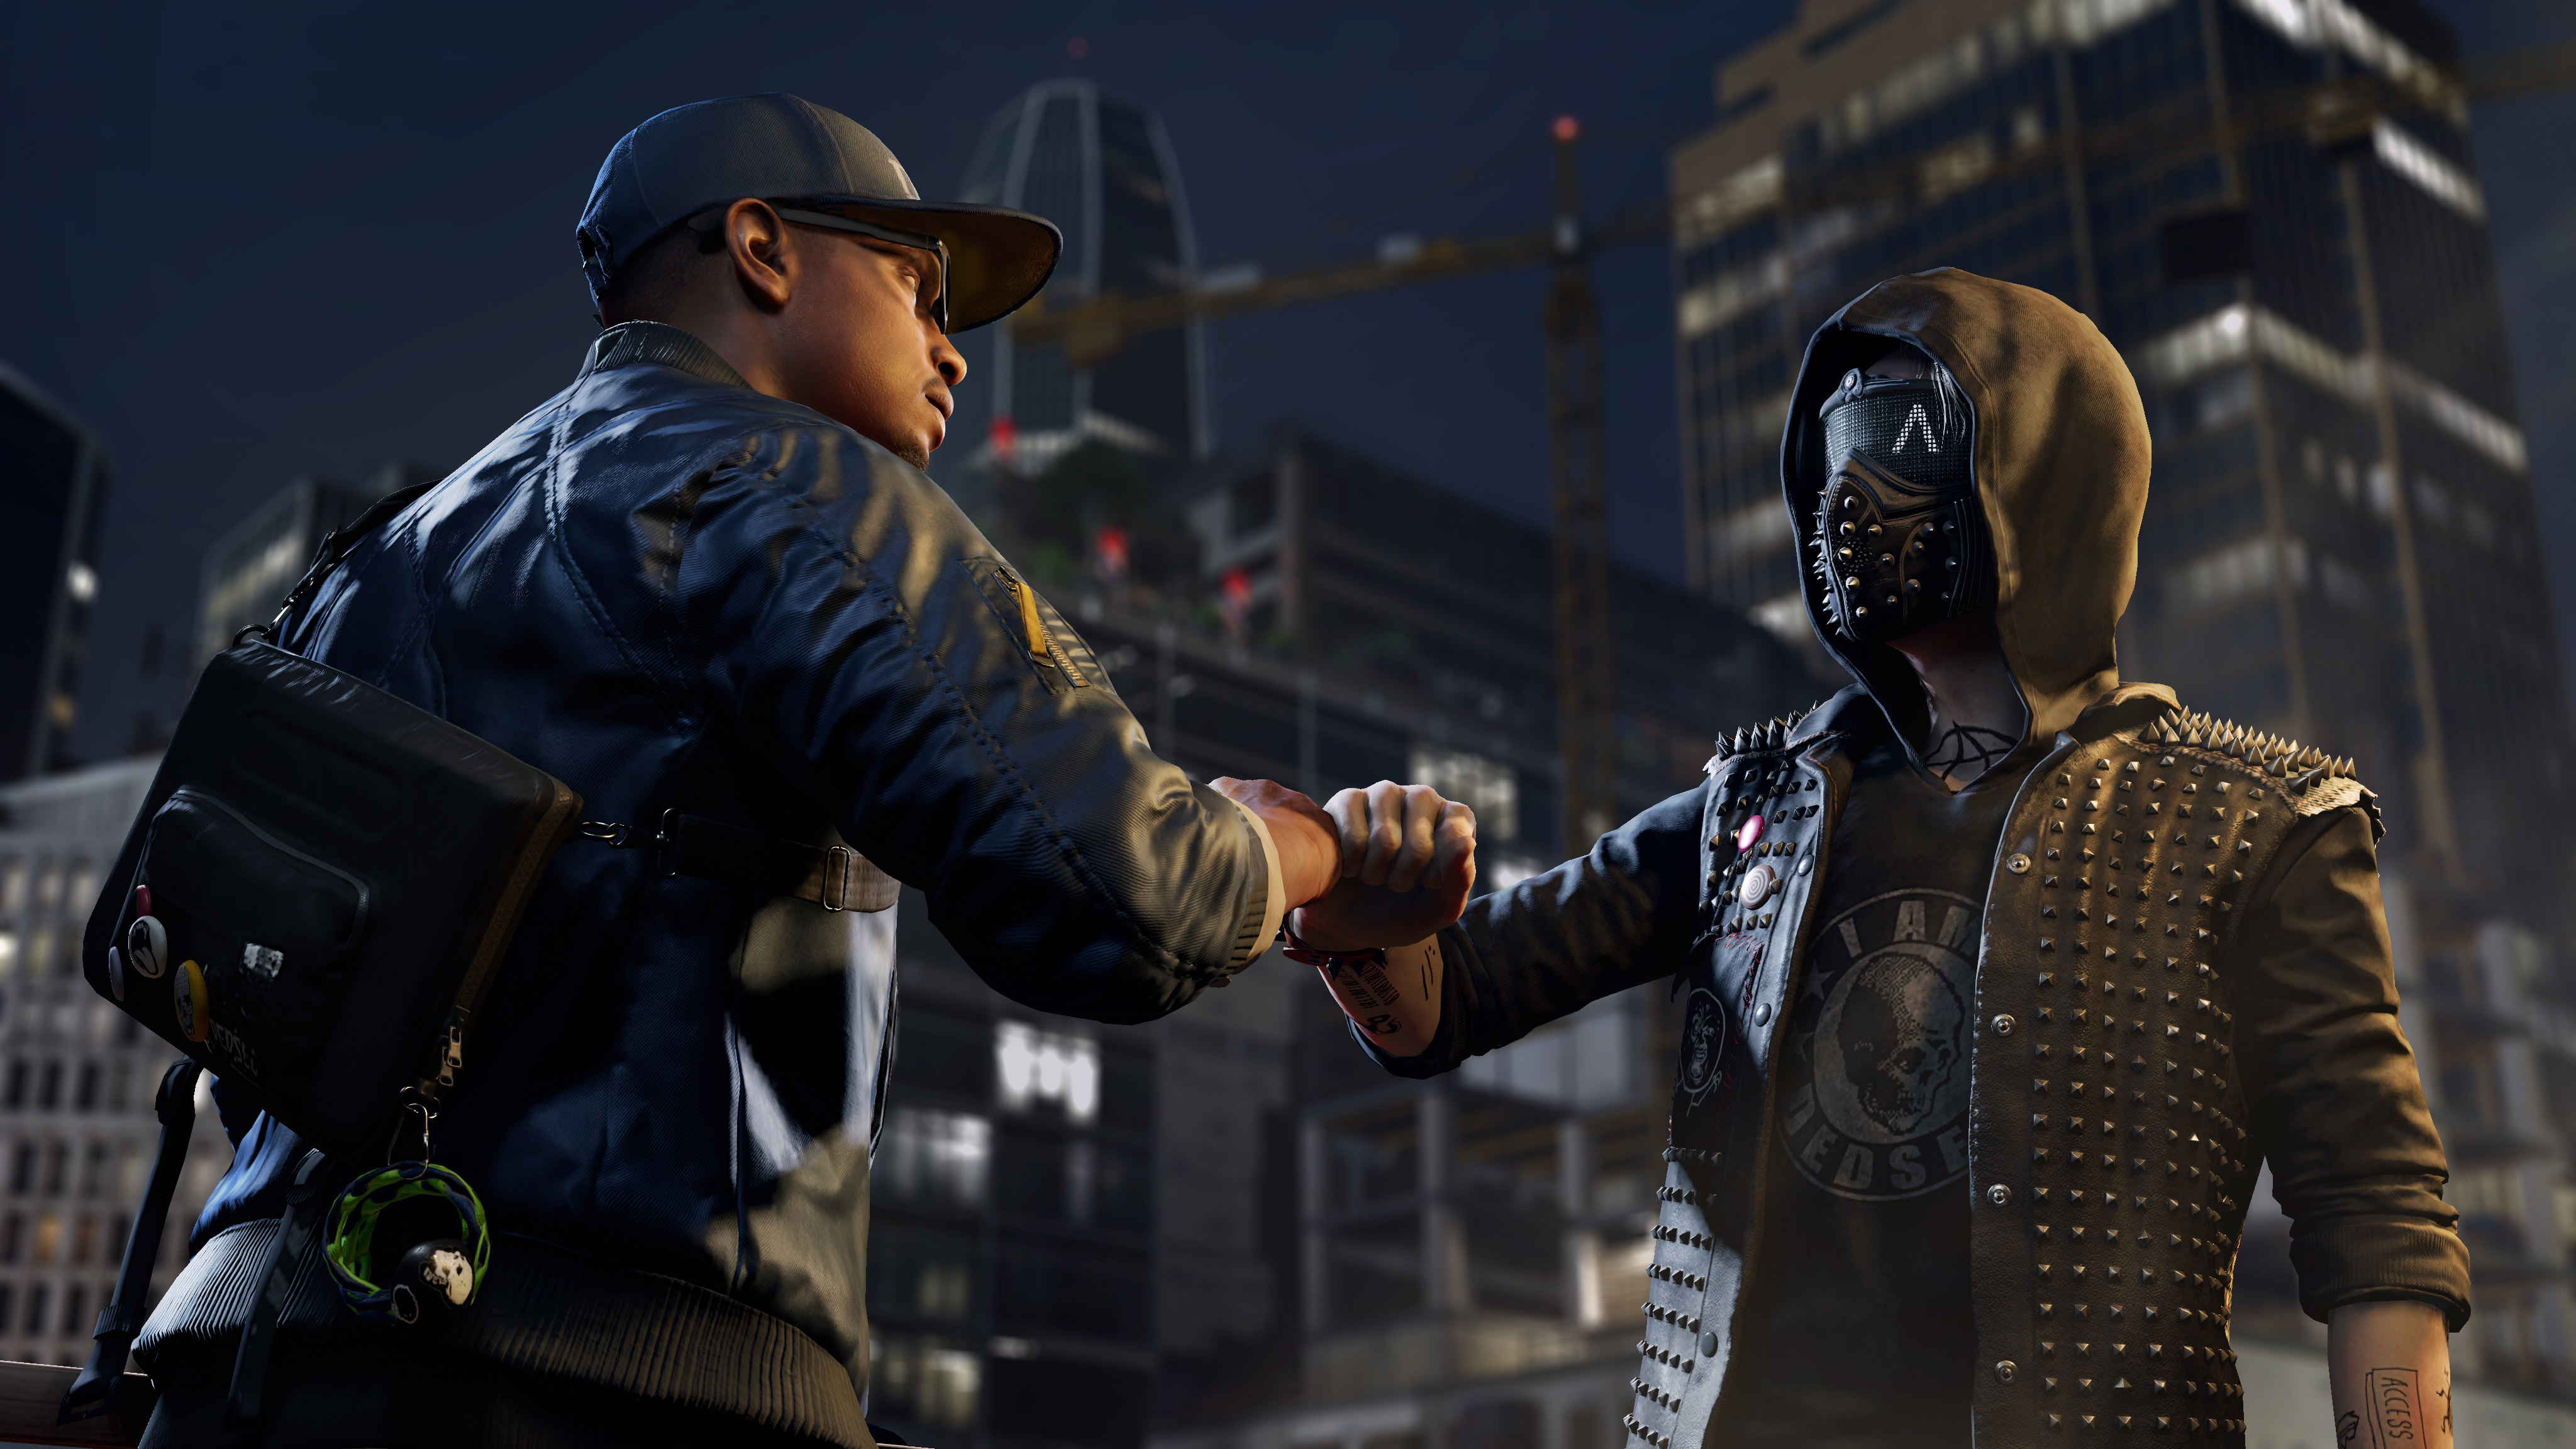 watch dogs 2 widescreen computer background 1349